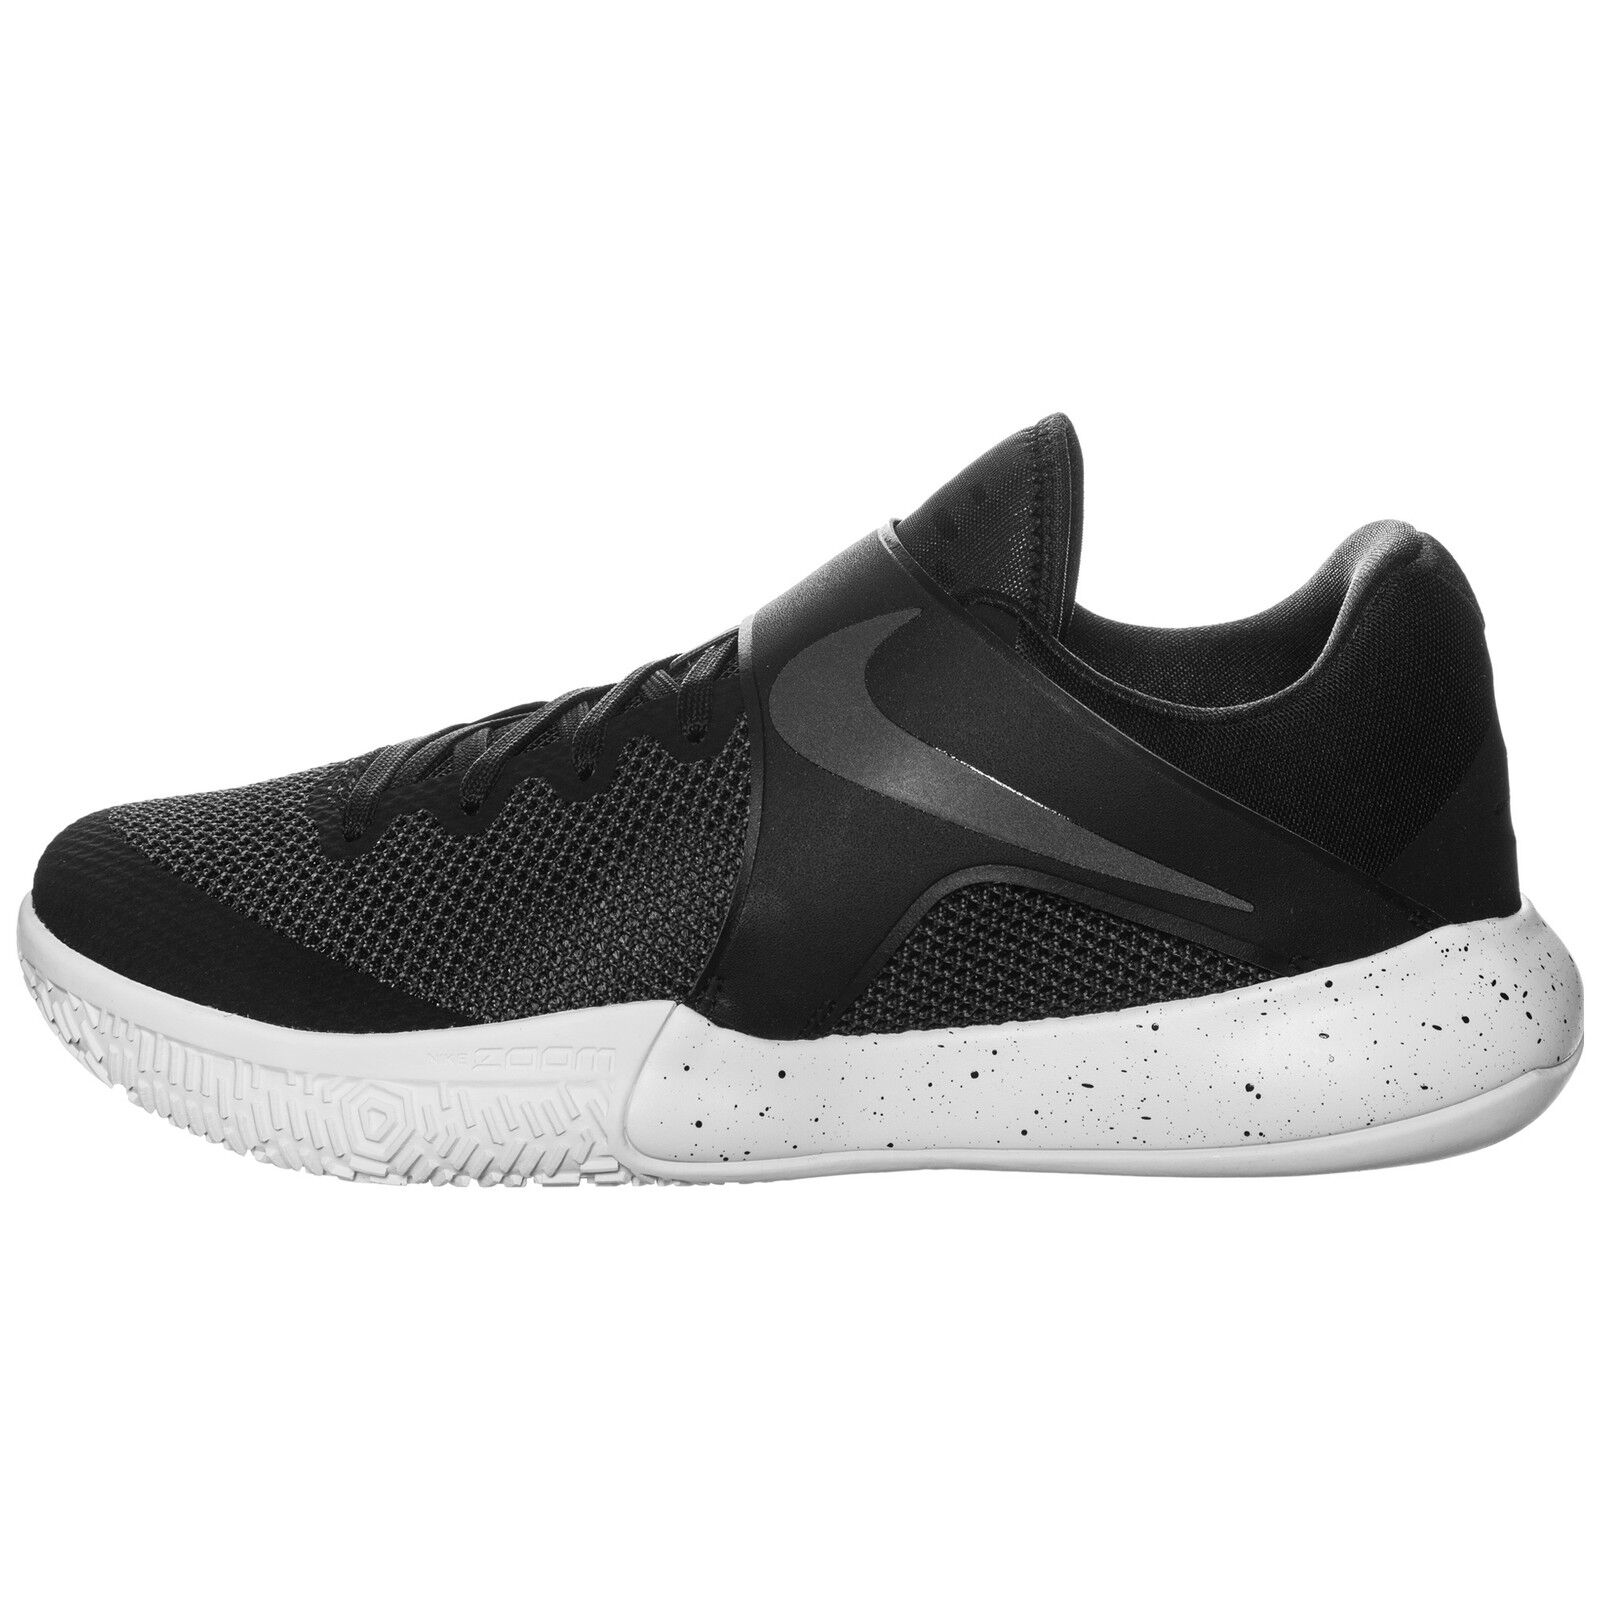 Nike Nike Zoom Live 852421-001 Basketball Shoes Casual Shoes Trainers Trainers Wild casual shoes